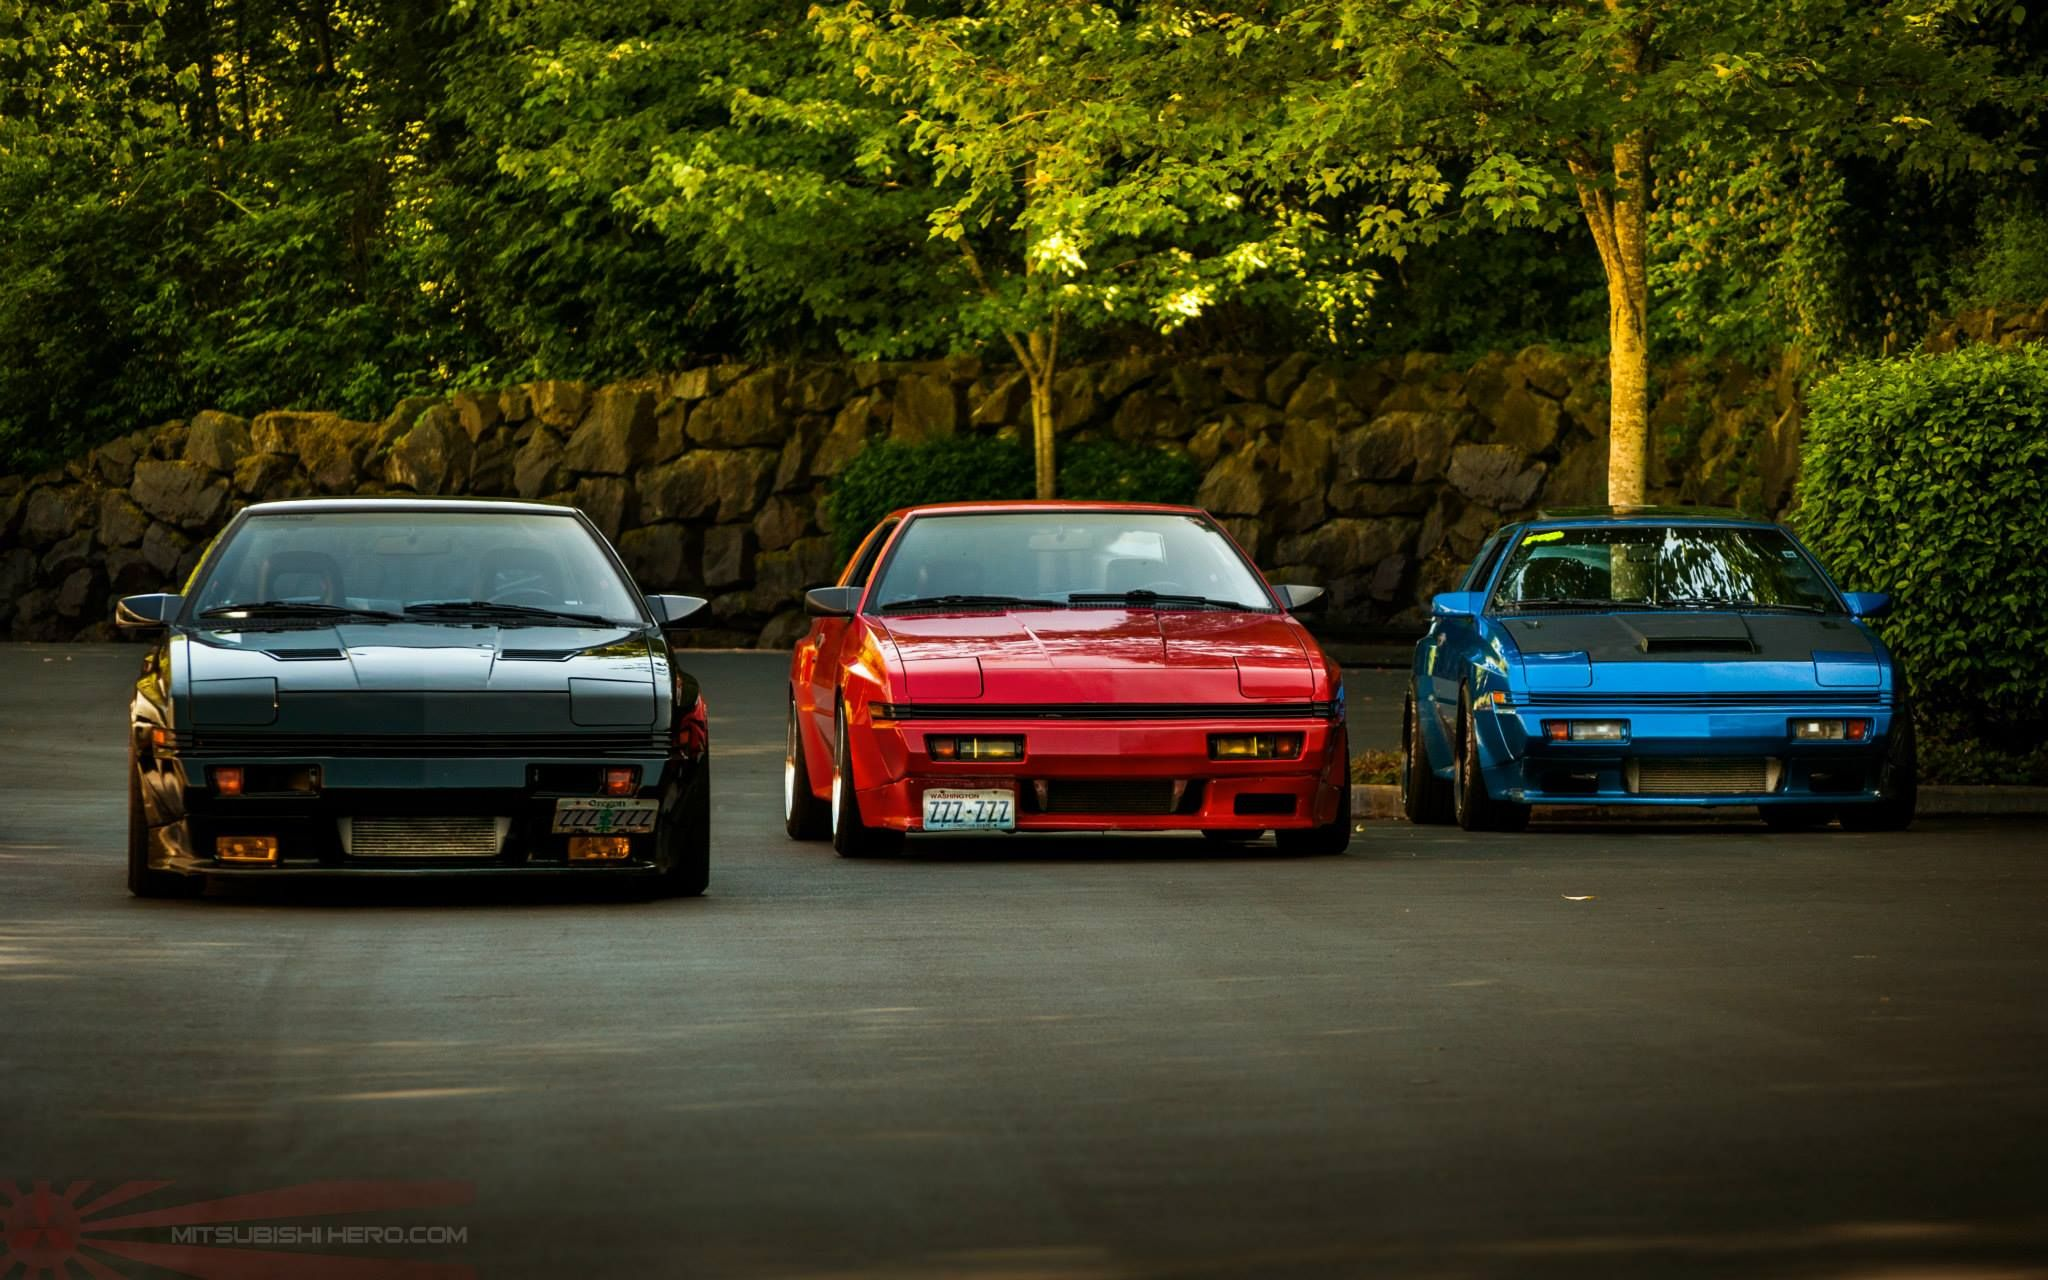 Northwest Starions Mitsubishi Pinterest Cars Jdm And Rx7